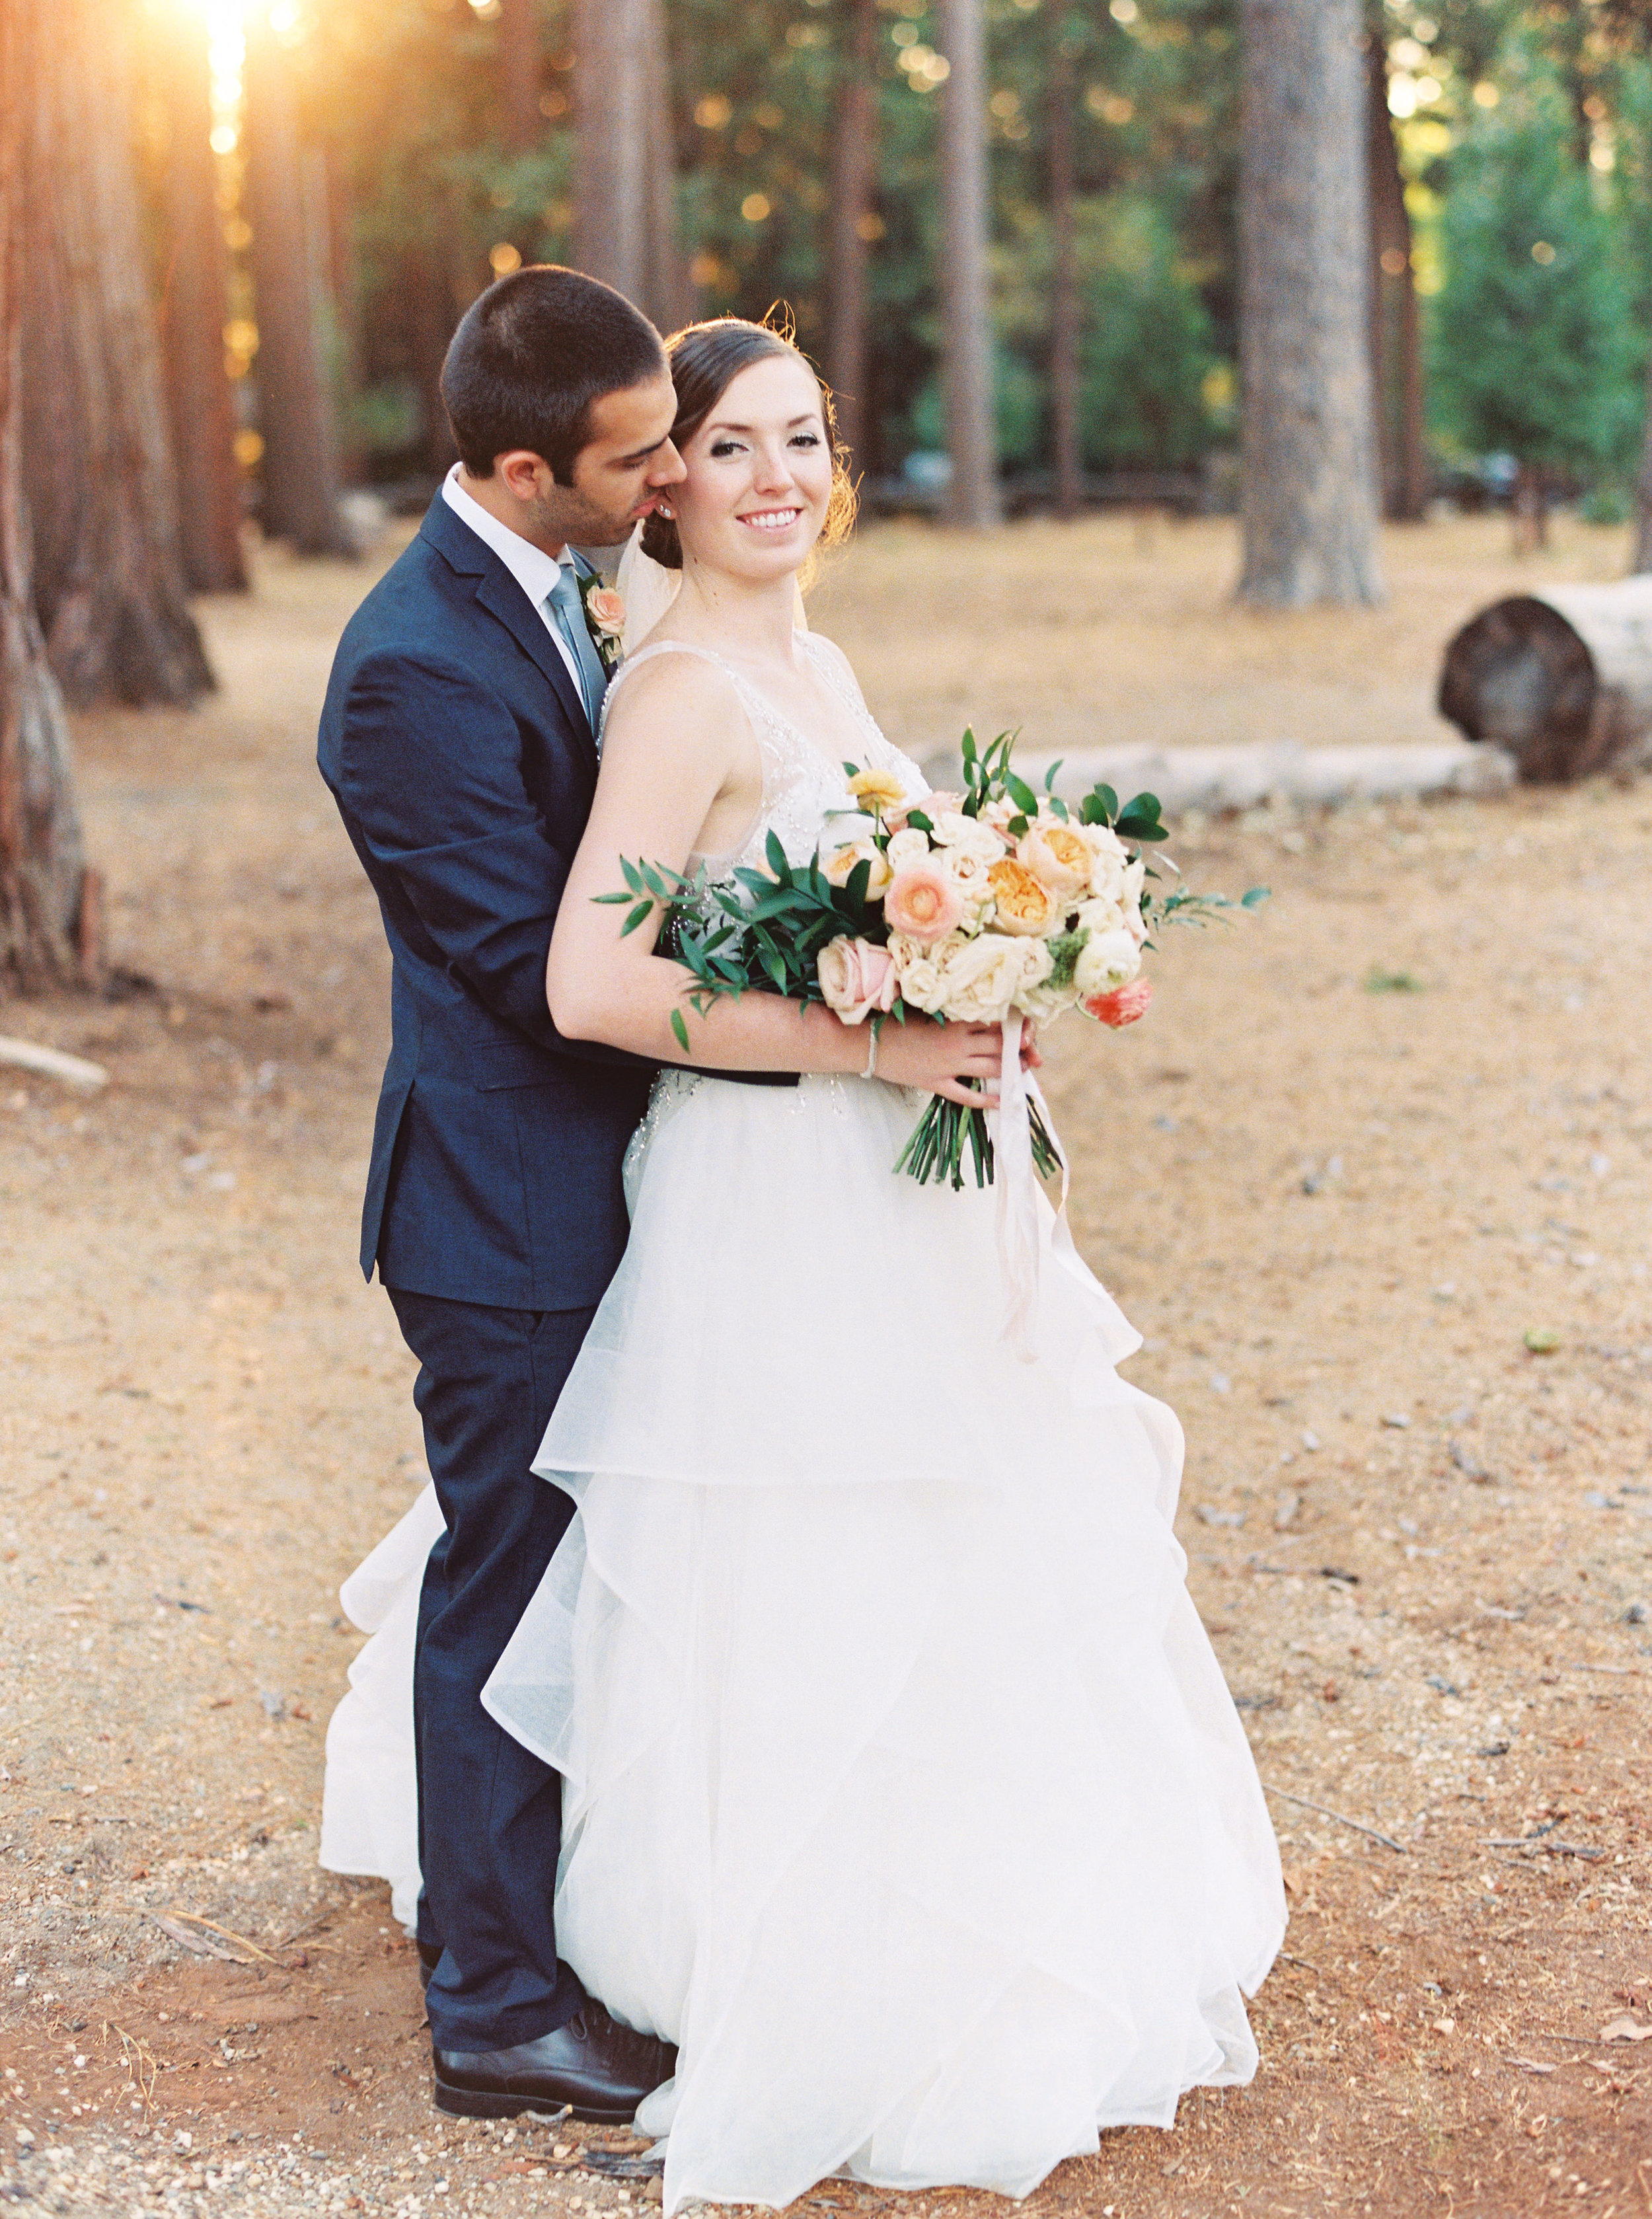 Forest-house-lodge-wedding-foresthill-california-64.jpg